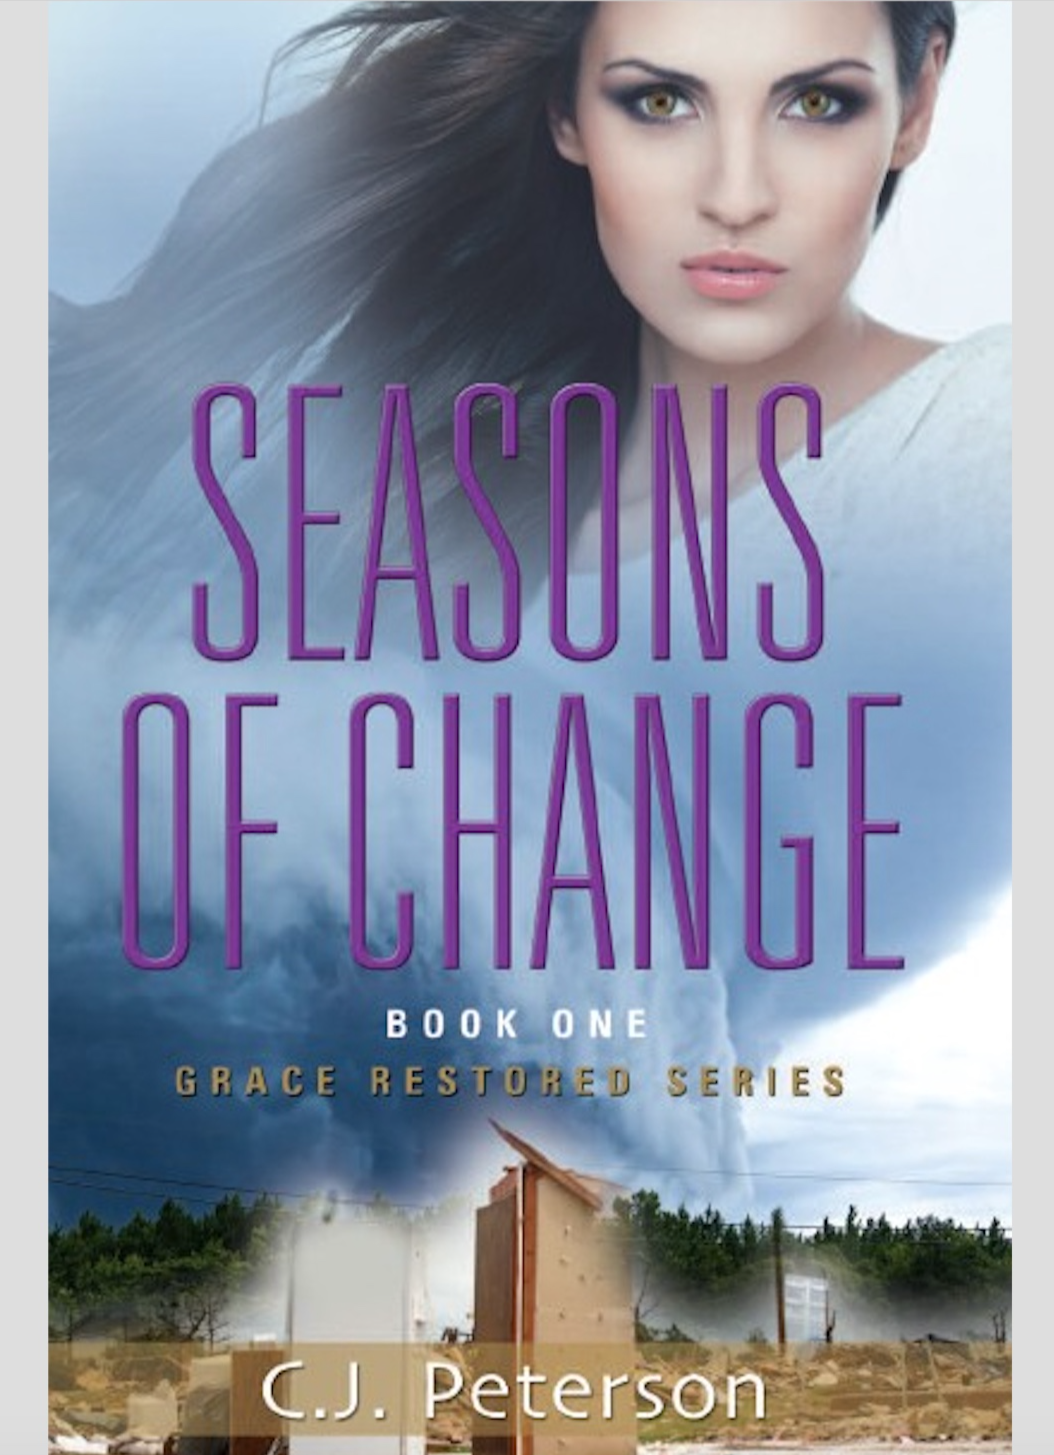 SEASONS OF CHANGE (Book 1, Grace Restored Series)